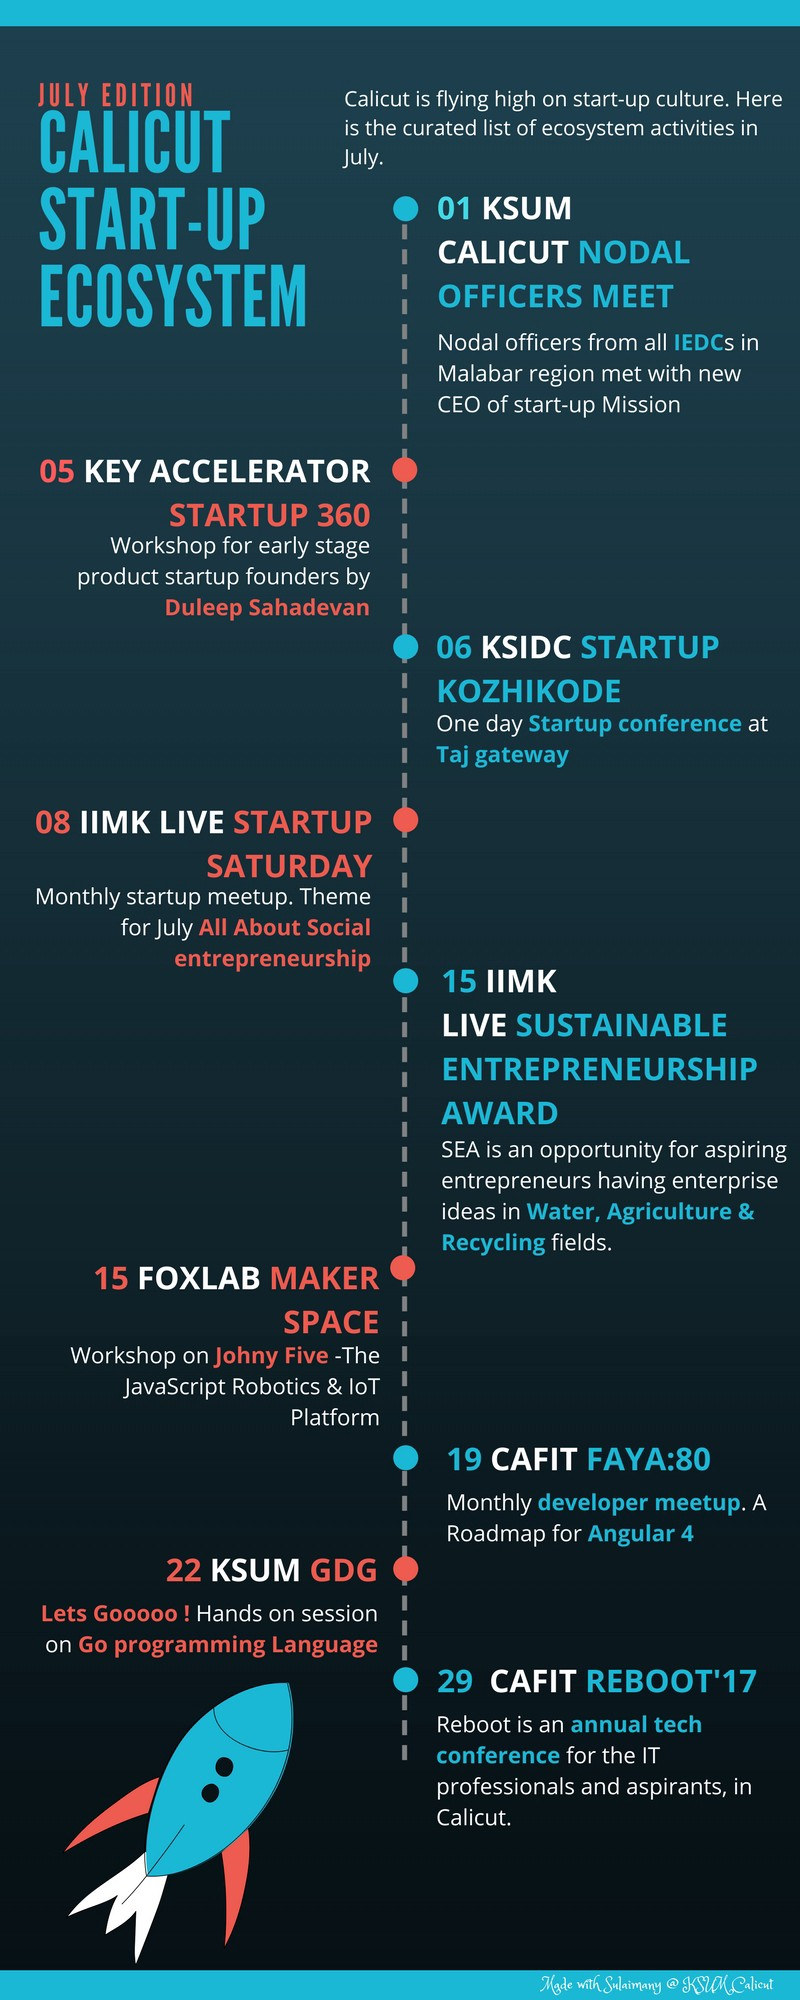 Calicut Startup ecosystem | July - Mehar MP - Medium